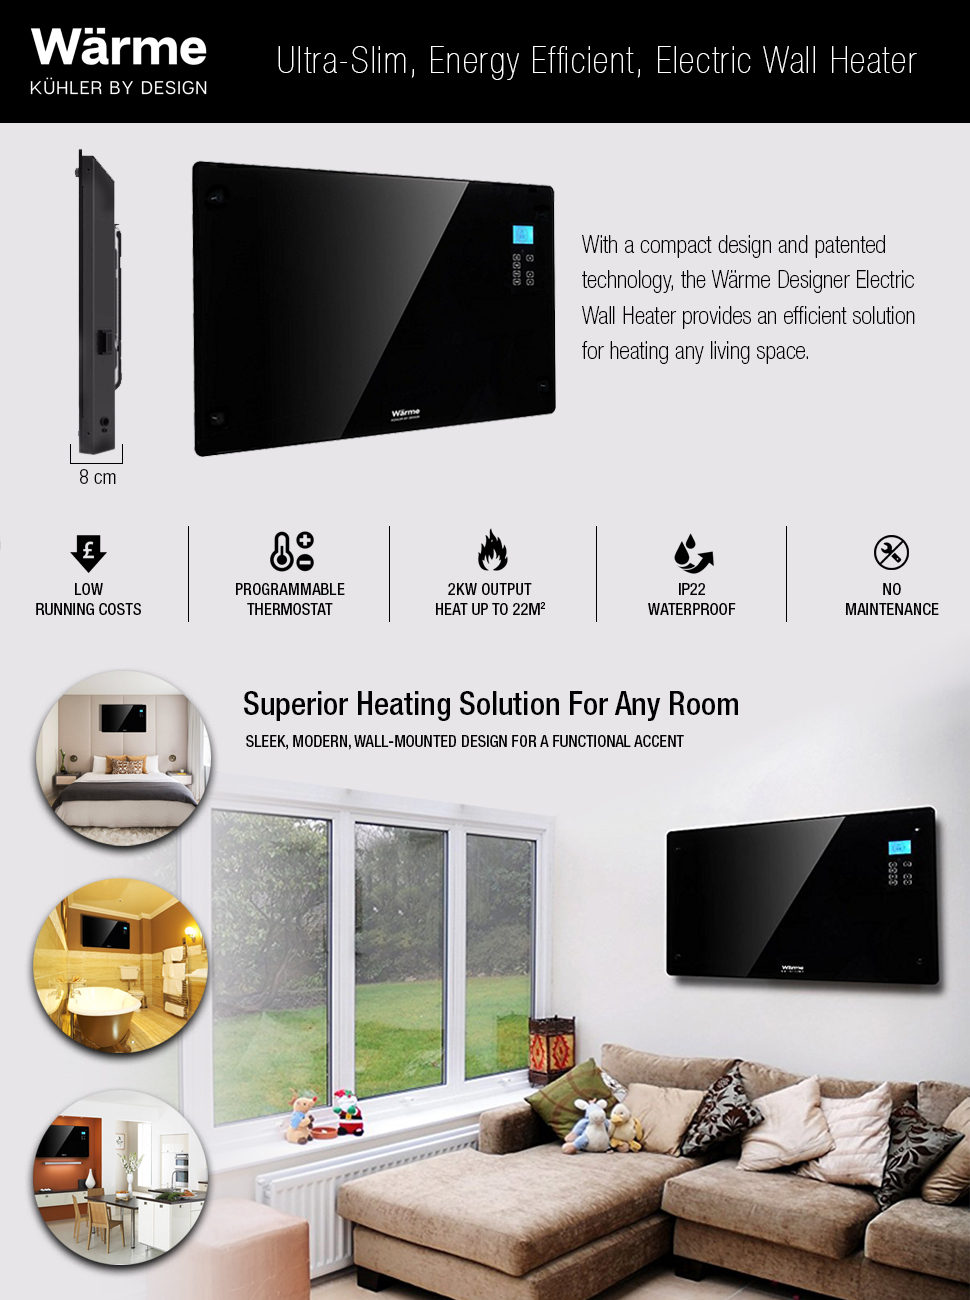 The Wärme Electric Heater Combines An Efficient Heating Solution With A  Stunning, Modern Design. Operating At A 2KW Output, One Wärme Heater Can  Heat A 22 ...